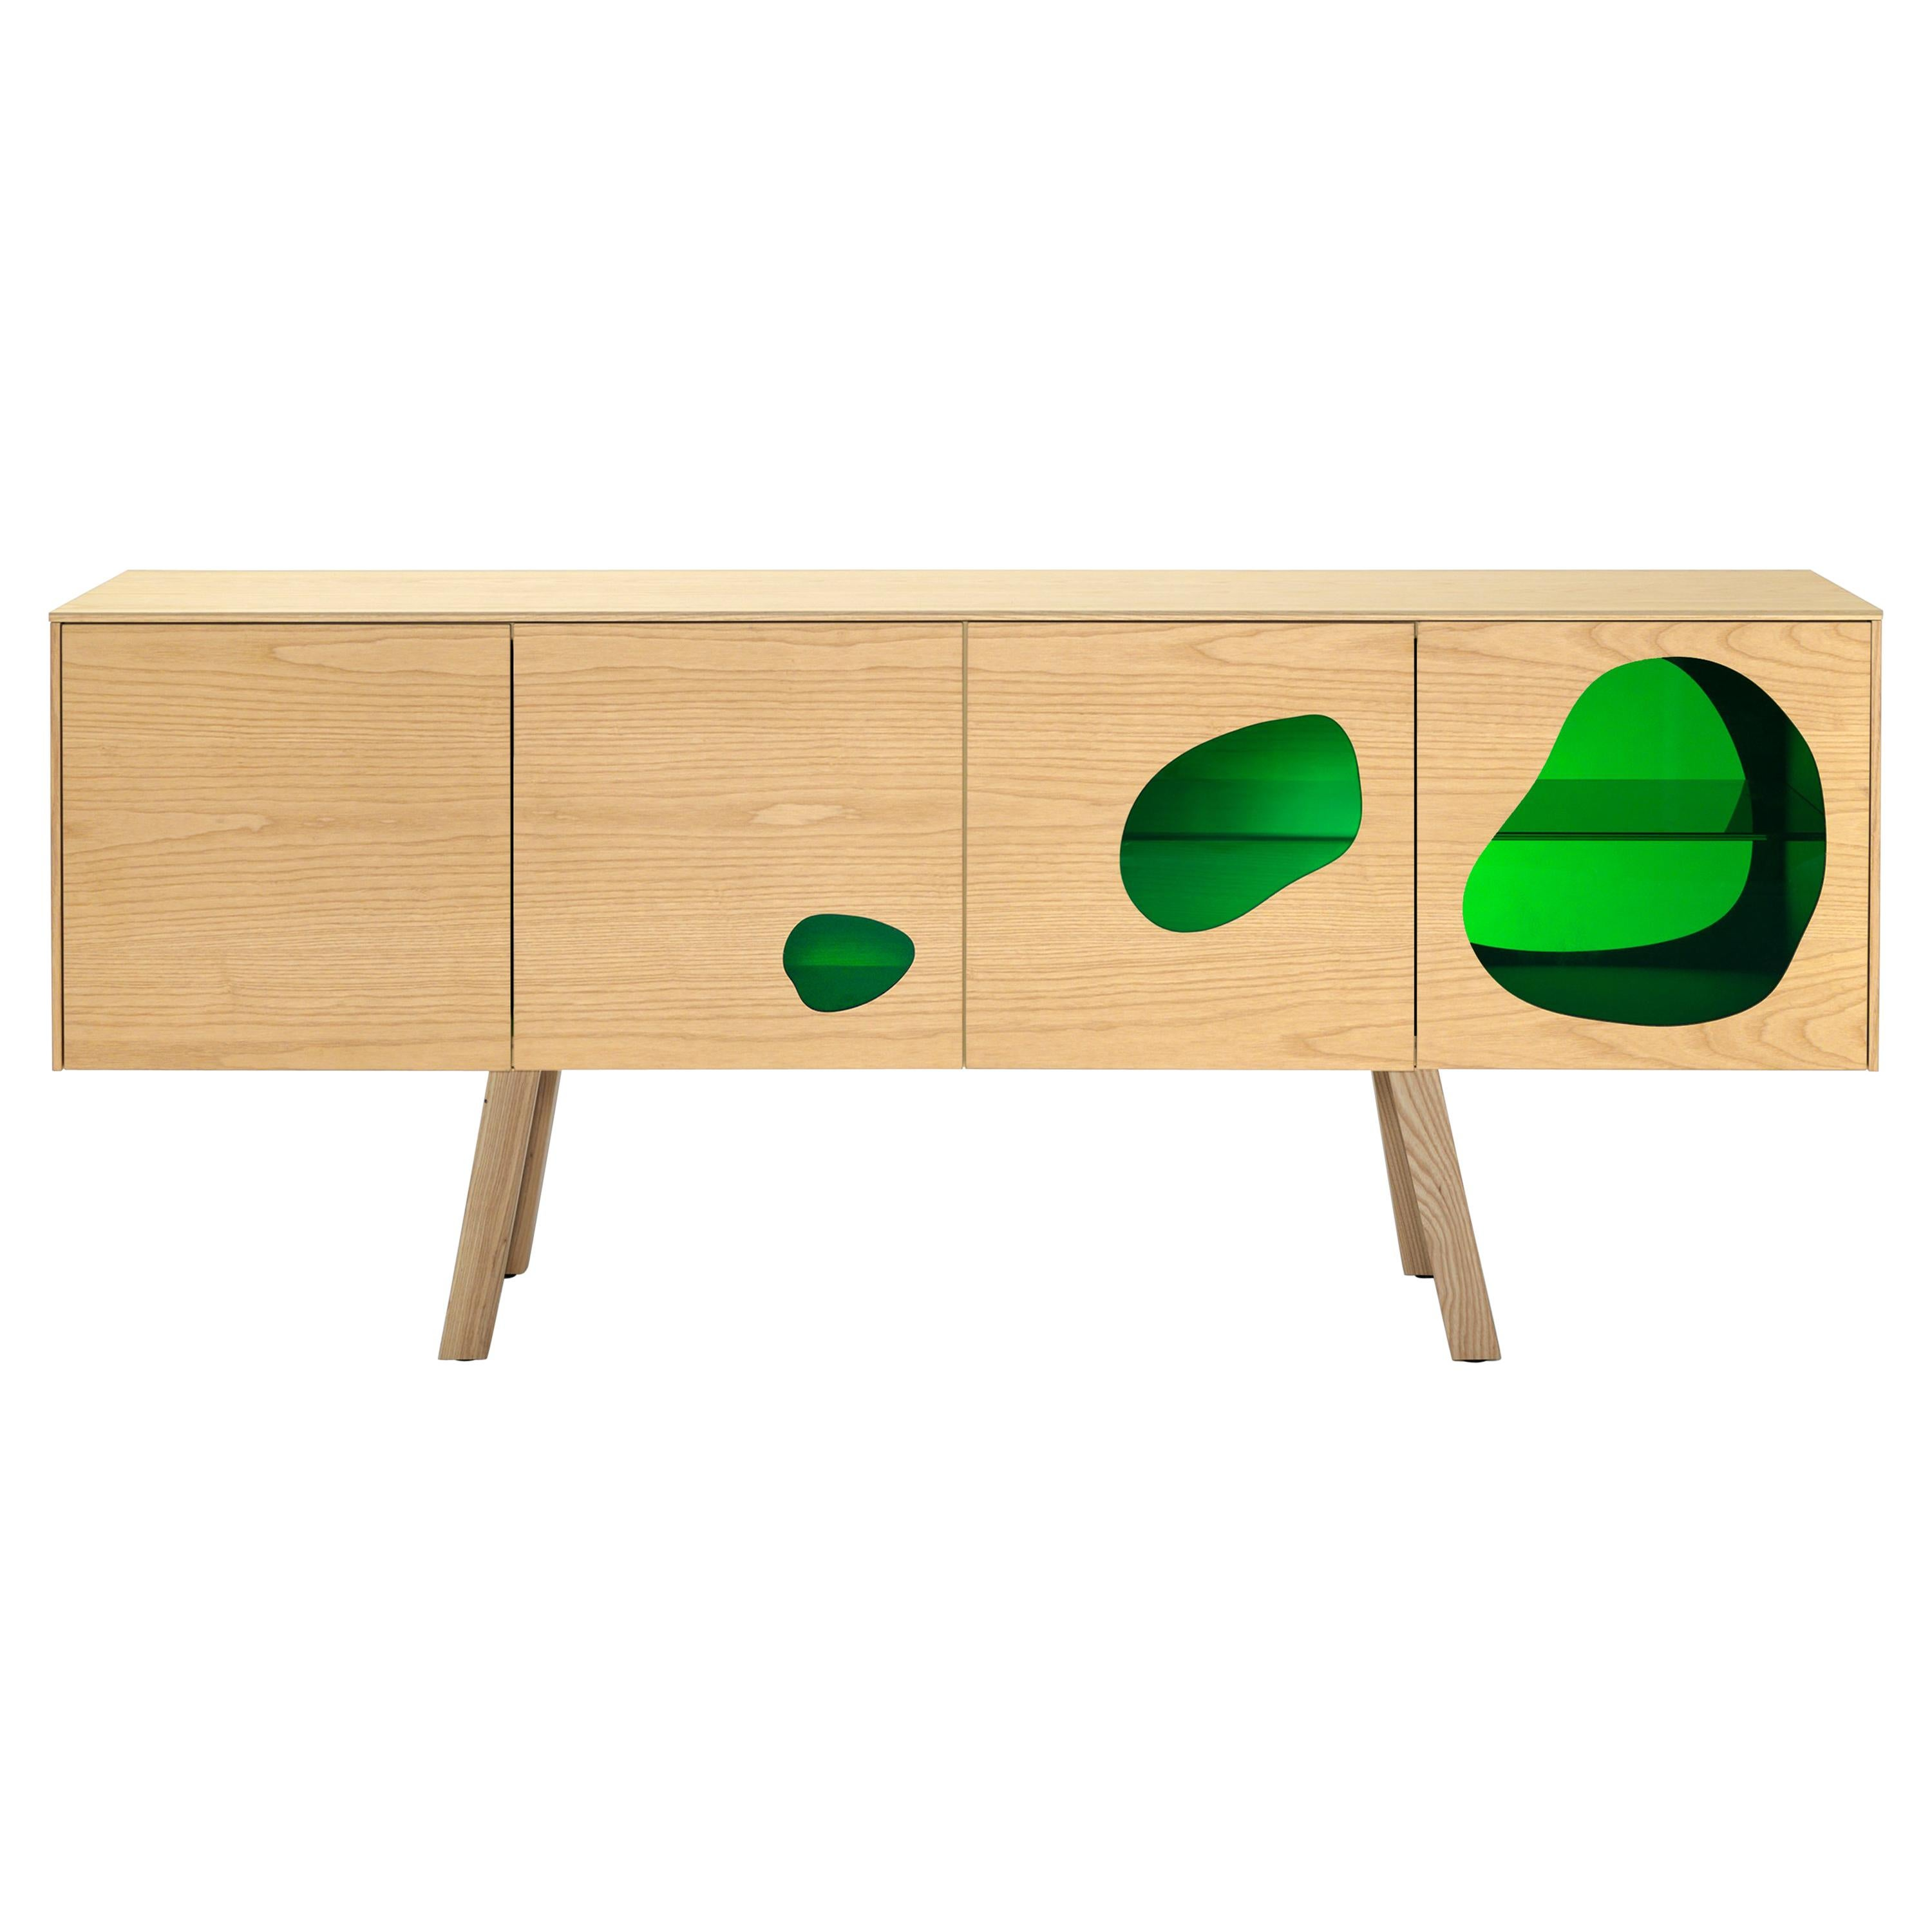 Cabinet in glass and wood by the Campana brothers. Prototype and unique piece.